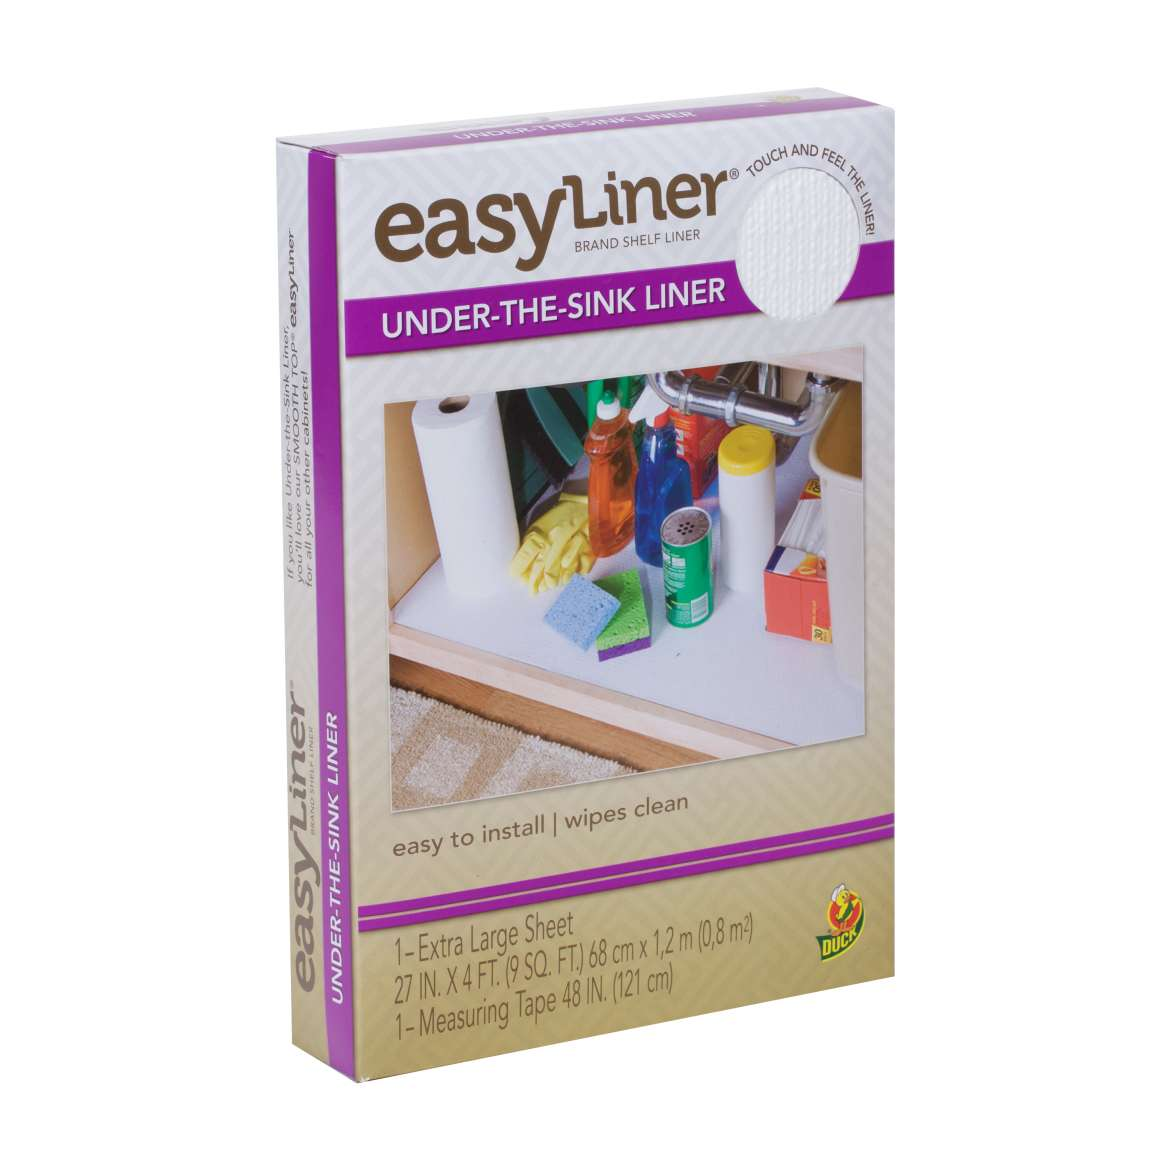 Easy Liner® Under-the-Sink Liner Image